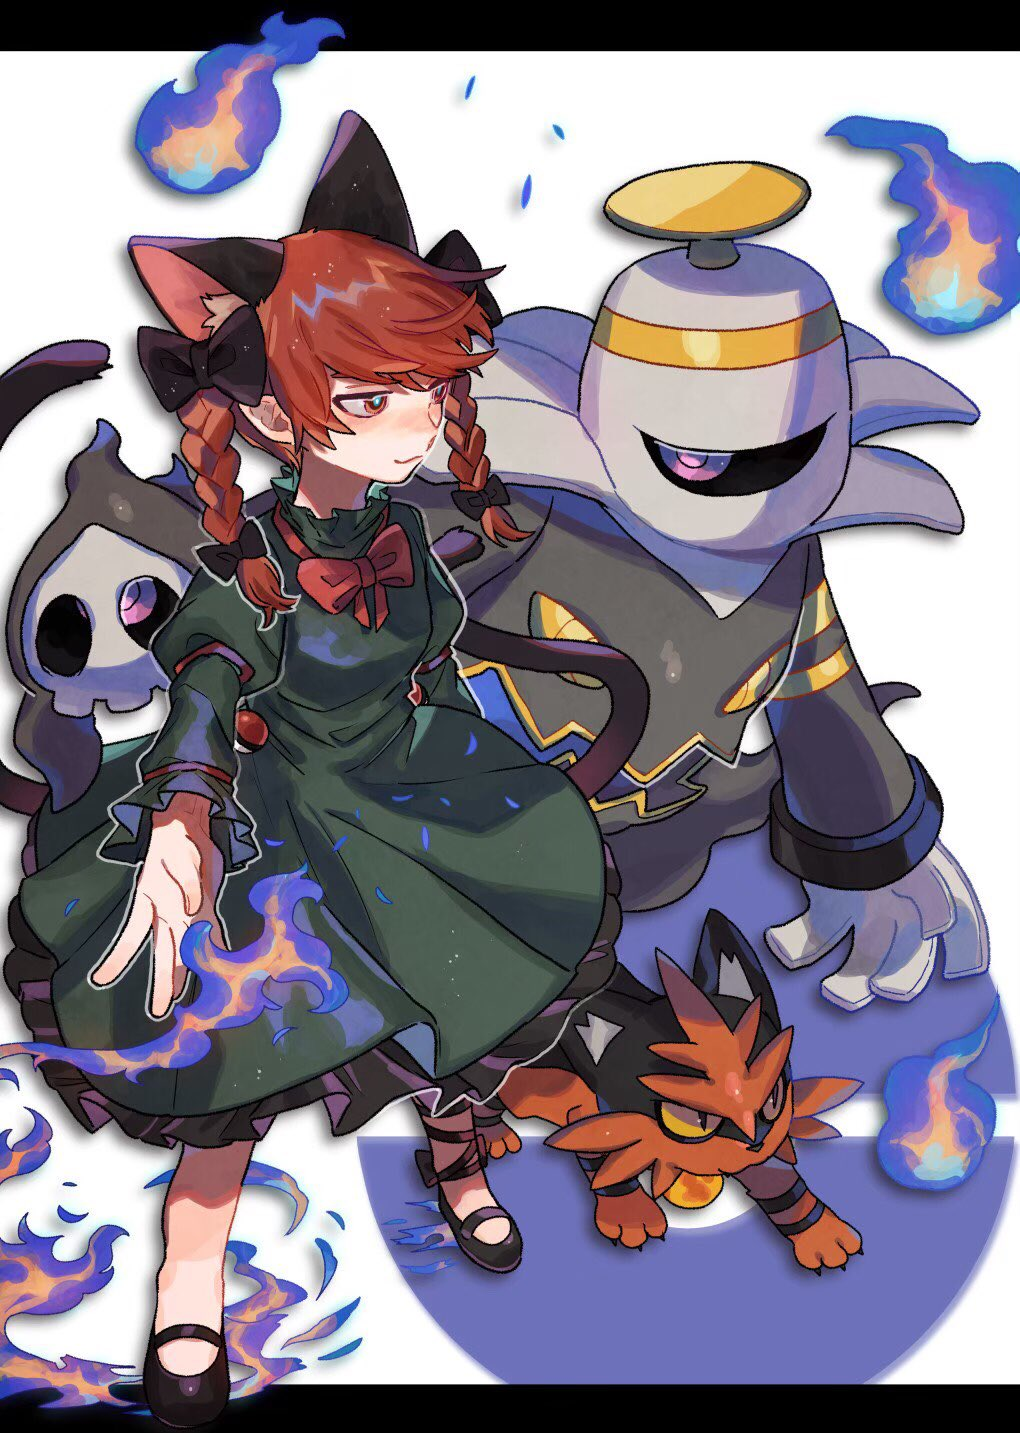 animal_ears bangs black_bow black_footwear black_ribbon blue_fire bow braid cat_ears cat_tail commentary crossover damenaito dress dusknoir duskull extra_ears eyebrows_behind_hair fire frilled_dress frilled_sleeves frills gen_3_pokemon gen_4_pokemon gen_7_pokemon green_dress hair_bow highres hitodama juliet_sleeves kaenbyou_rin leg_ribbon letterboxed long_hair long_sleeves looking_at_another mary_janes multiple_tails nekomata outstretched_arm poke_ball poke_ball_symbol pokemon pokemon_(creature) puffy_sleeves red_eyes red_neckwear redhead ribbon shoes sleeve_ribbon standing tail torracat touhou trait_connection twin_braids two_tails